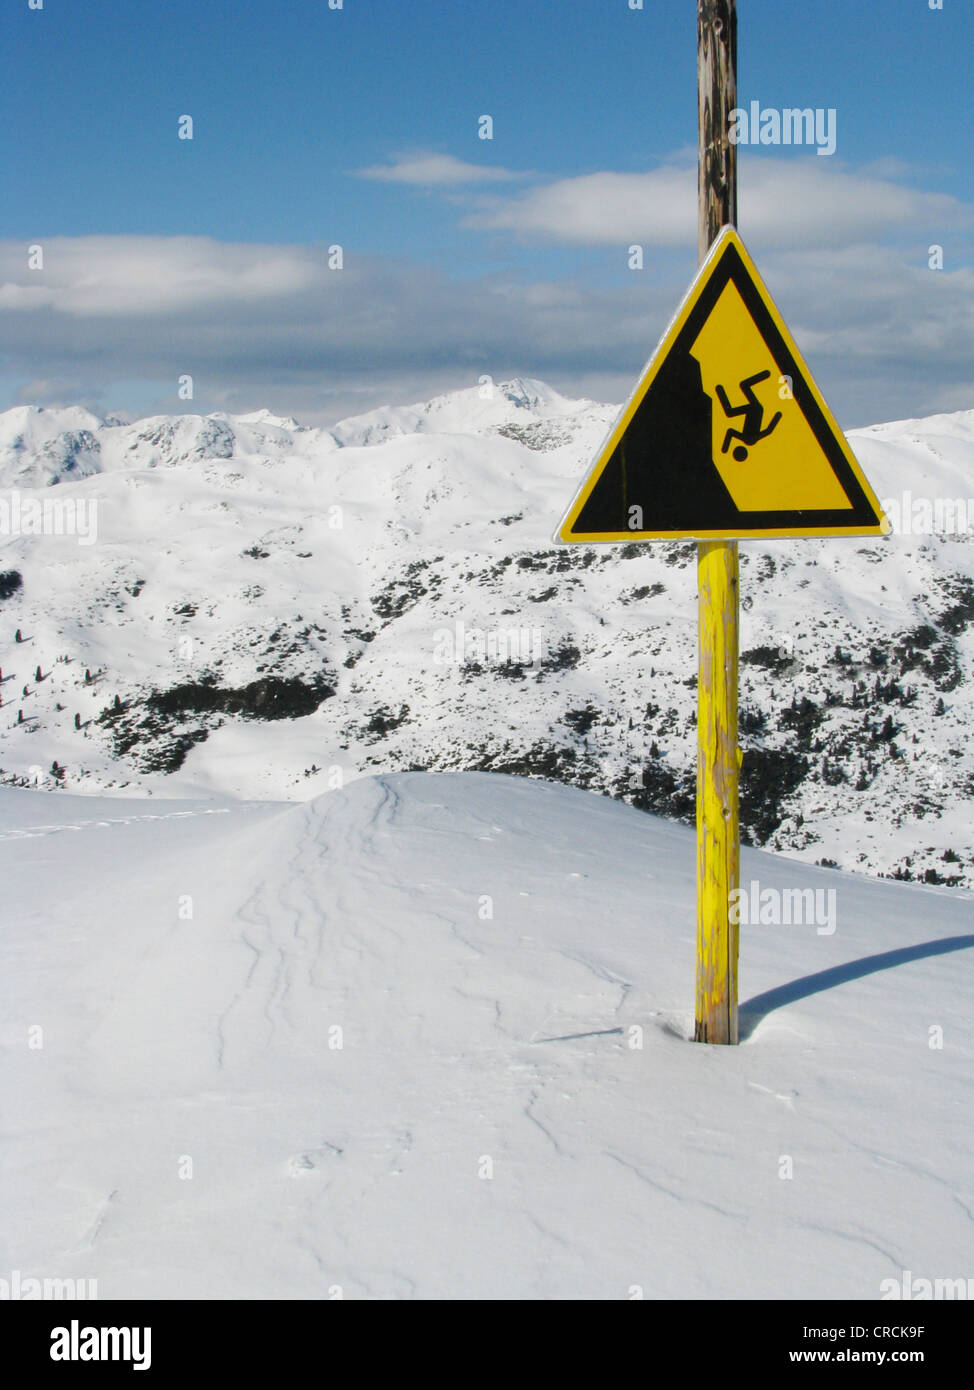 Sign in snowy mountain scenery of a skiing area warning against danger of falling into deep precipice, Italy, Suedtirol, - Stock Image